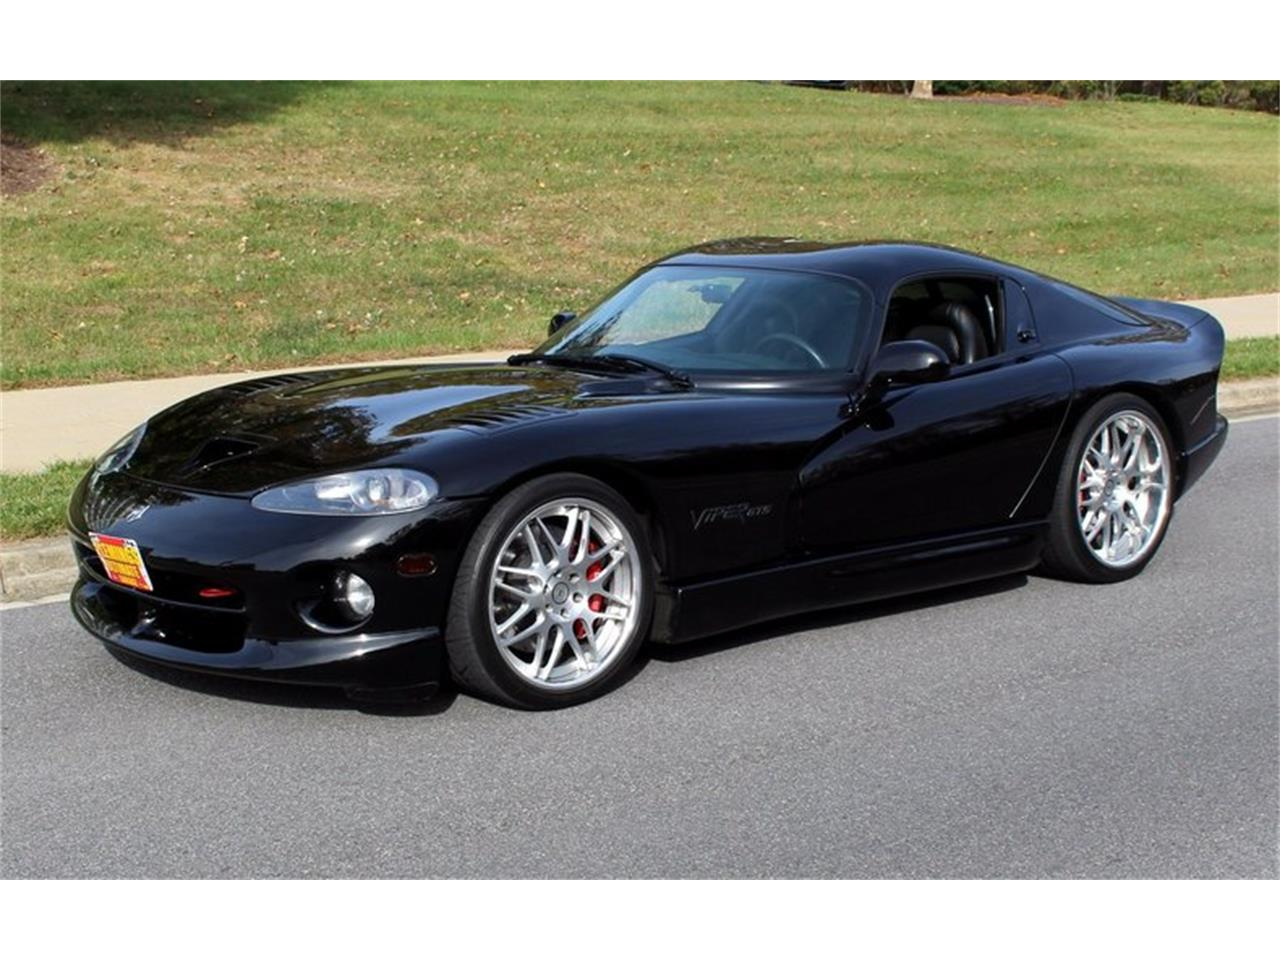 Viper Gts For Sale >> For Sale 1999 Dodge Viper Gts Hennessey 650r In Rockville Maryland